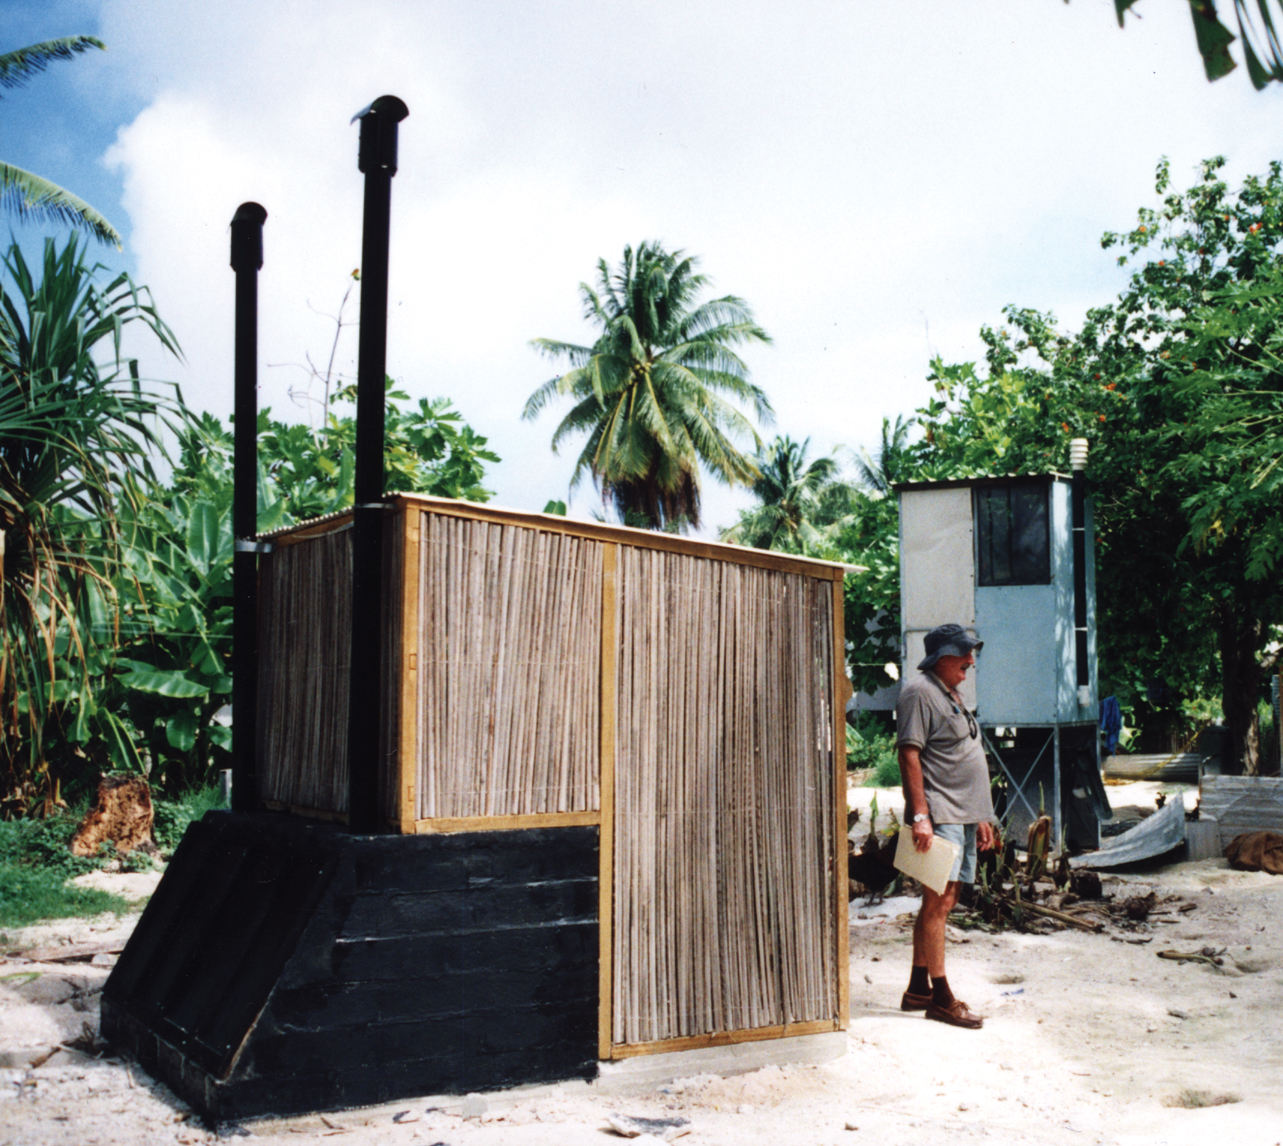 Above-ground compost toilets reduce contamination of underground water by septic tanks and pit latrine toilets, in Kiribati. Photo by John Macklin for AusAID